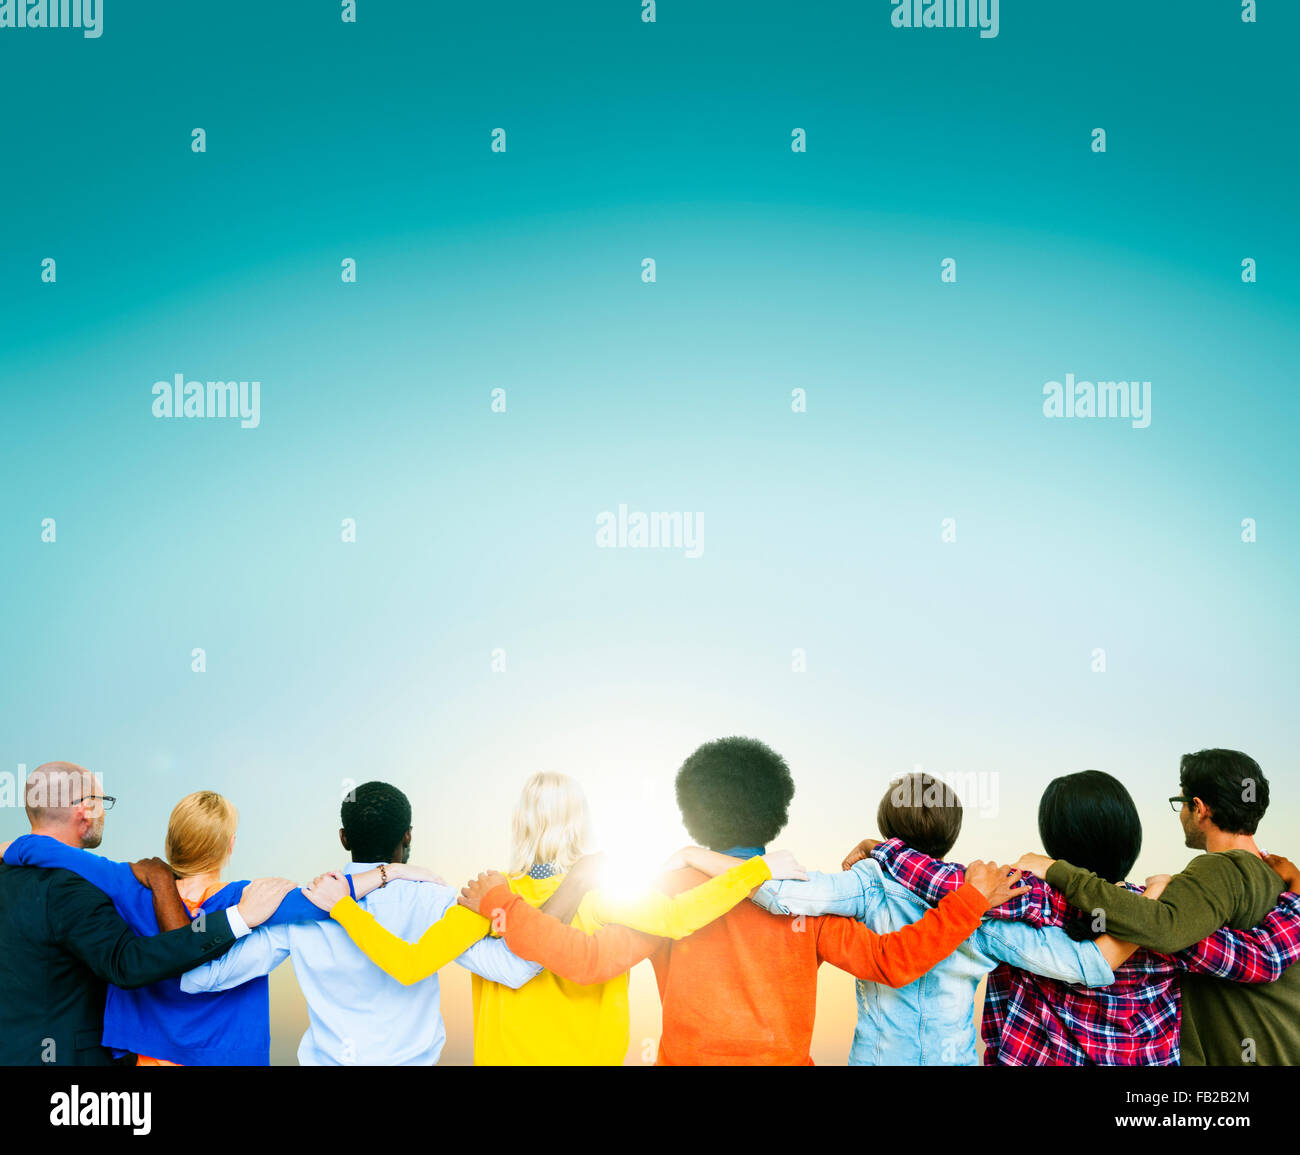 Connected Multiethnic People Turned Backside Concept - Stock Image